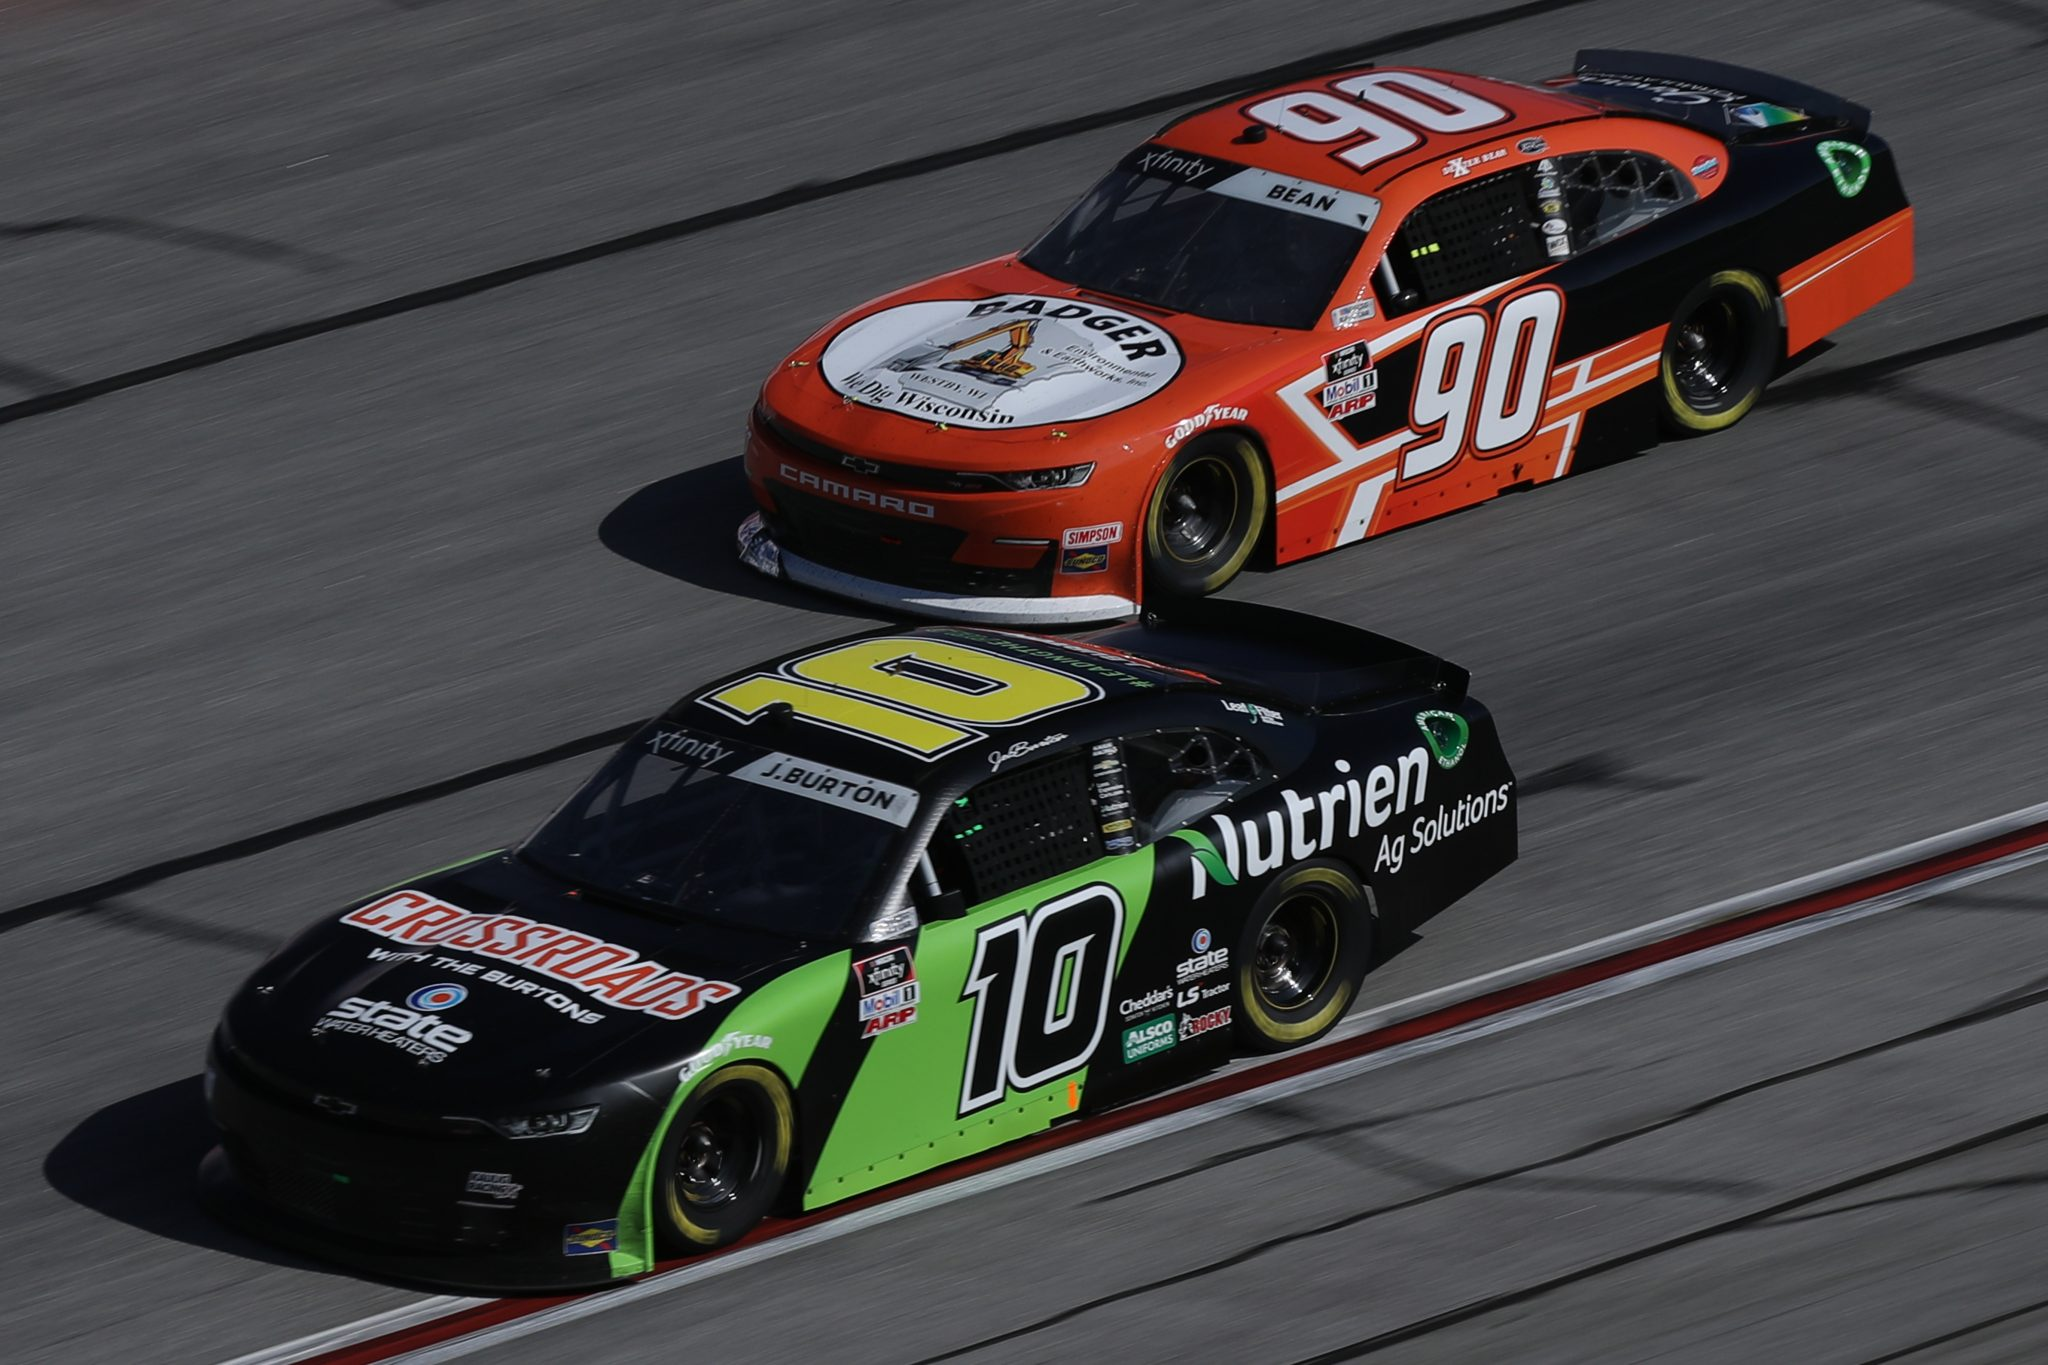 HAMPTON, GEORGIA - MARCH 20: Jeb Burton, driver of the #10 Nutrien Chevrolet, and Dexter Bean, driver of the #90 Badger Environmental Chevrolet, race during the NASCAR Xfinity Series EchoPark 250 at Atlanta Motor Speedway on March 20, 2021 in Hampton, Georgia. (Photo by Sean Gardner/Getty Images) | Getty Images